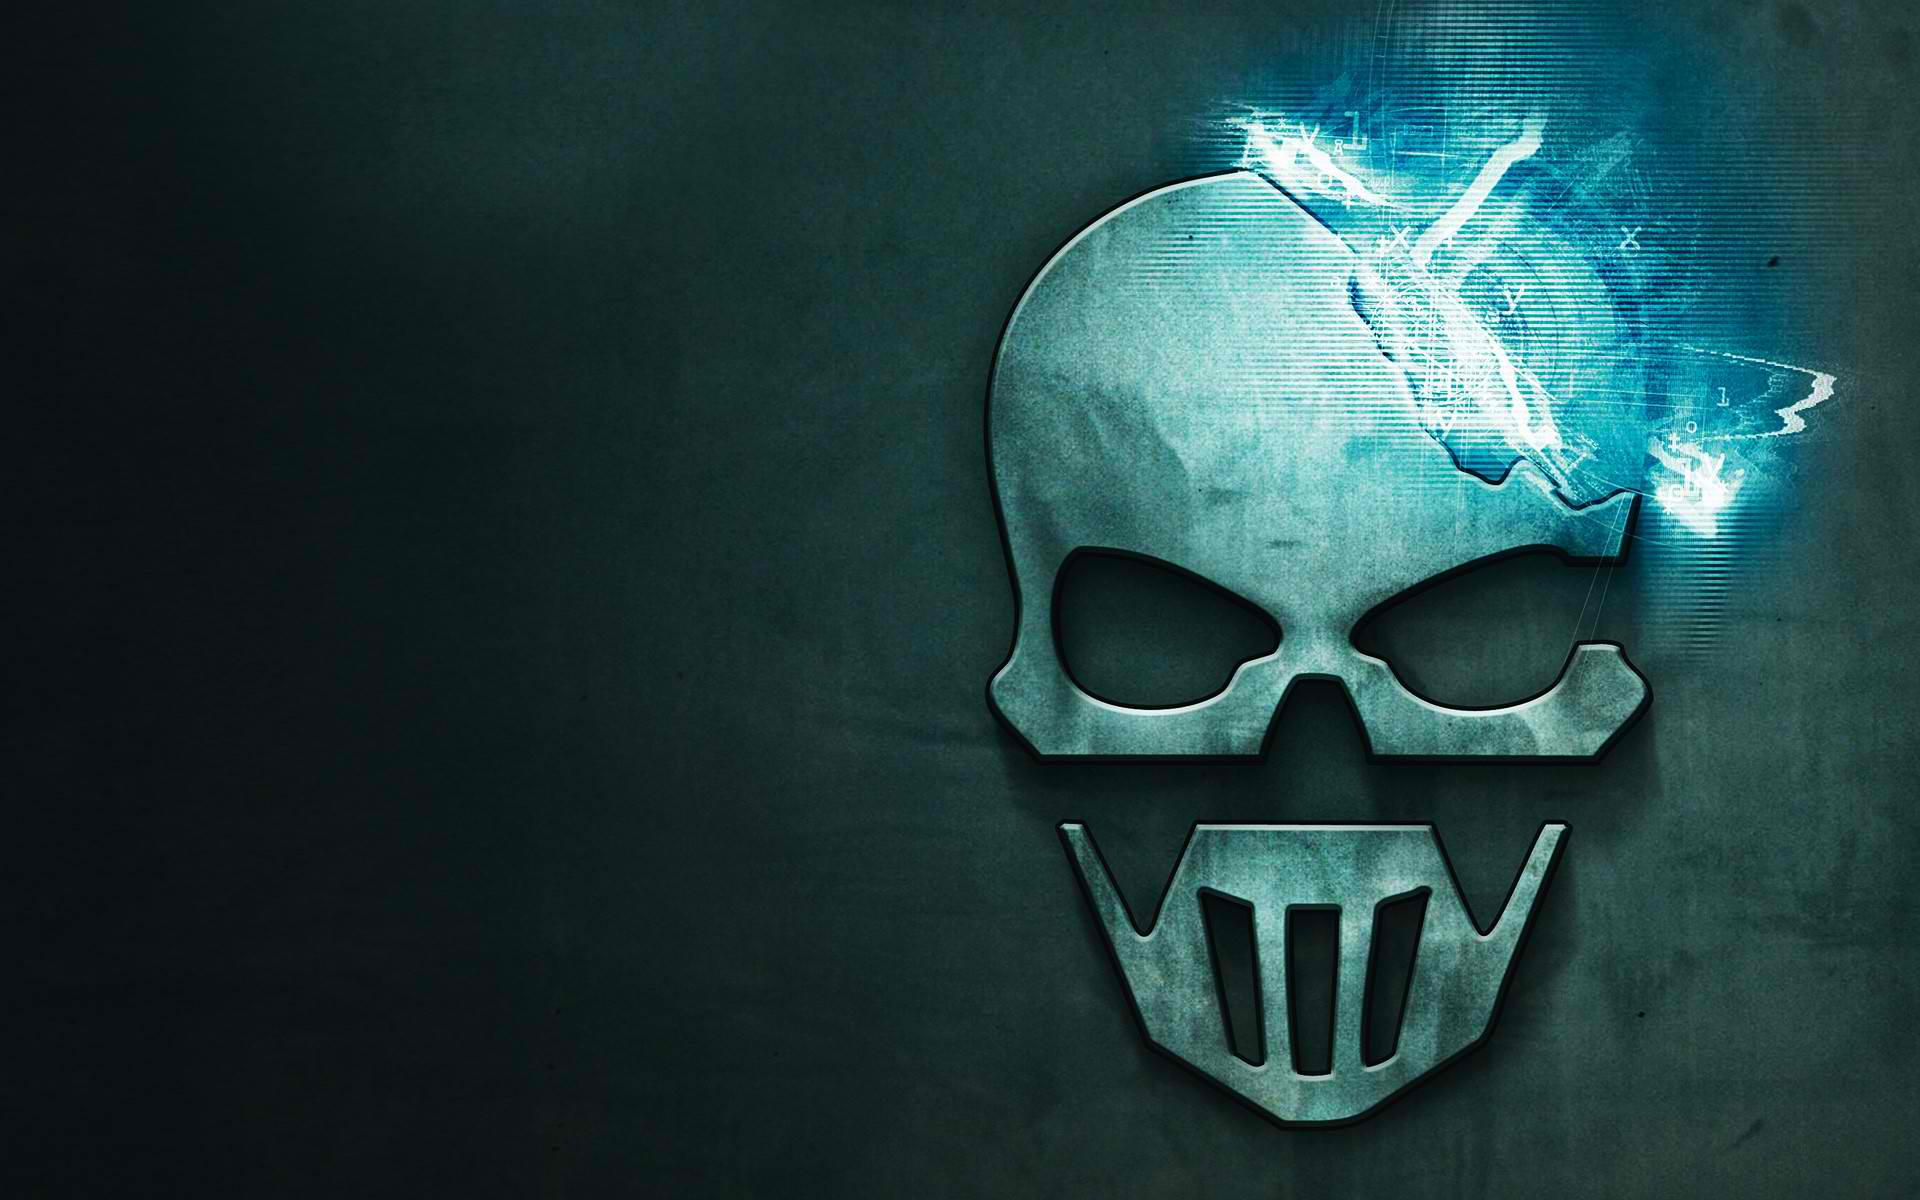 45 Ghost Recon Wallpapers On Wallpapersafari